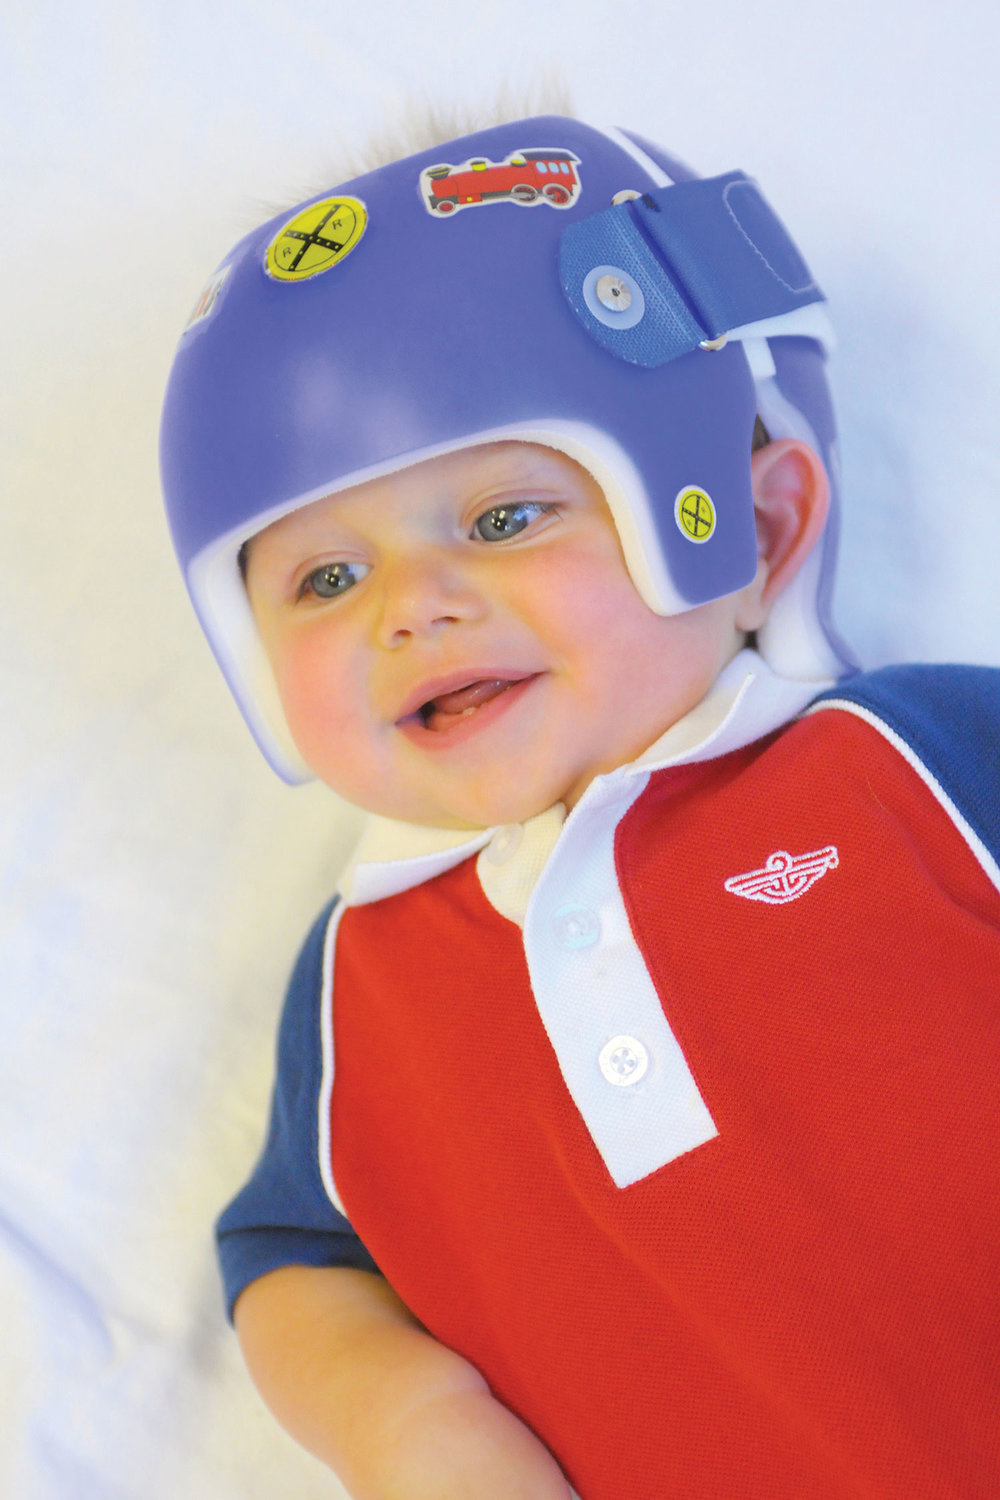 northeast-orthotics-and-prosthetics-starband-child-helmet-10.jpg